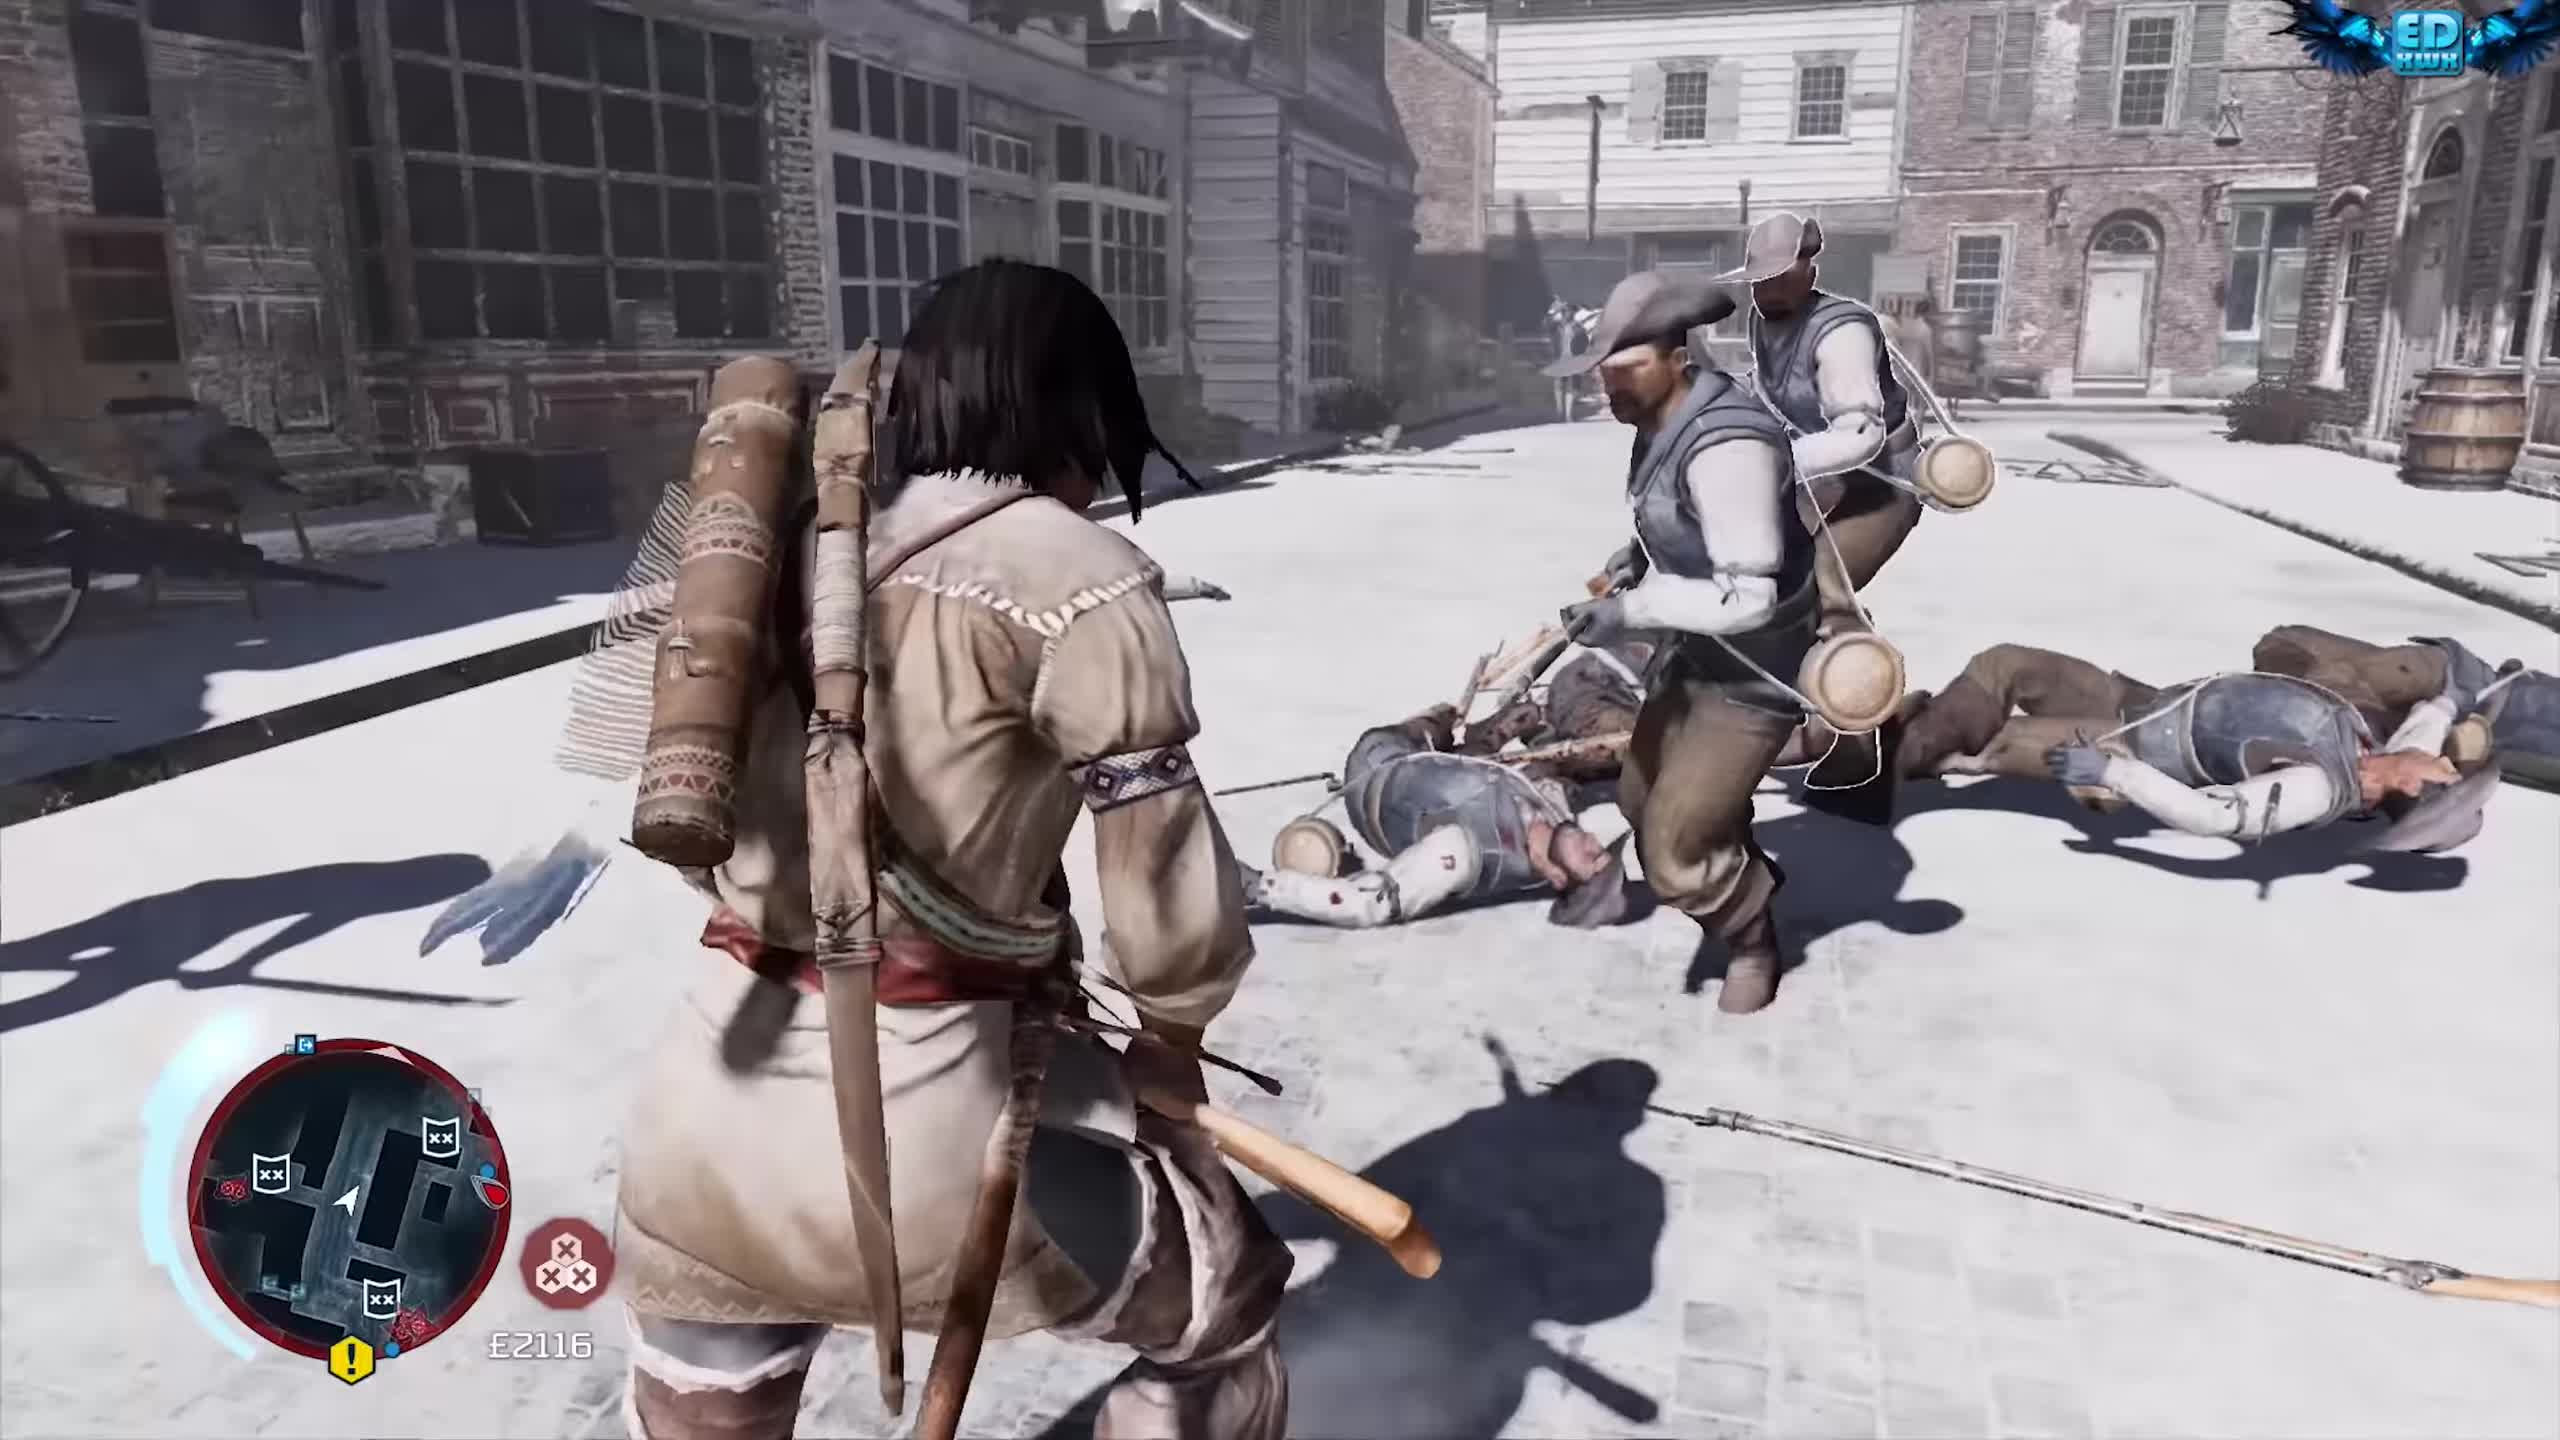 american revolution, assassin's creed 3, assassin-templar, british military, cinematic, connor, desmond miles, gameplay, historical action-adventure, multiplayer, open world, ps3, stealth, trailer, ubisoft, ubisoft montreal, video game, walkthrough, wii u, xbox360, Assassin's Creed 3 Remastered Young Master Connor Flawless Combat GIFs